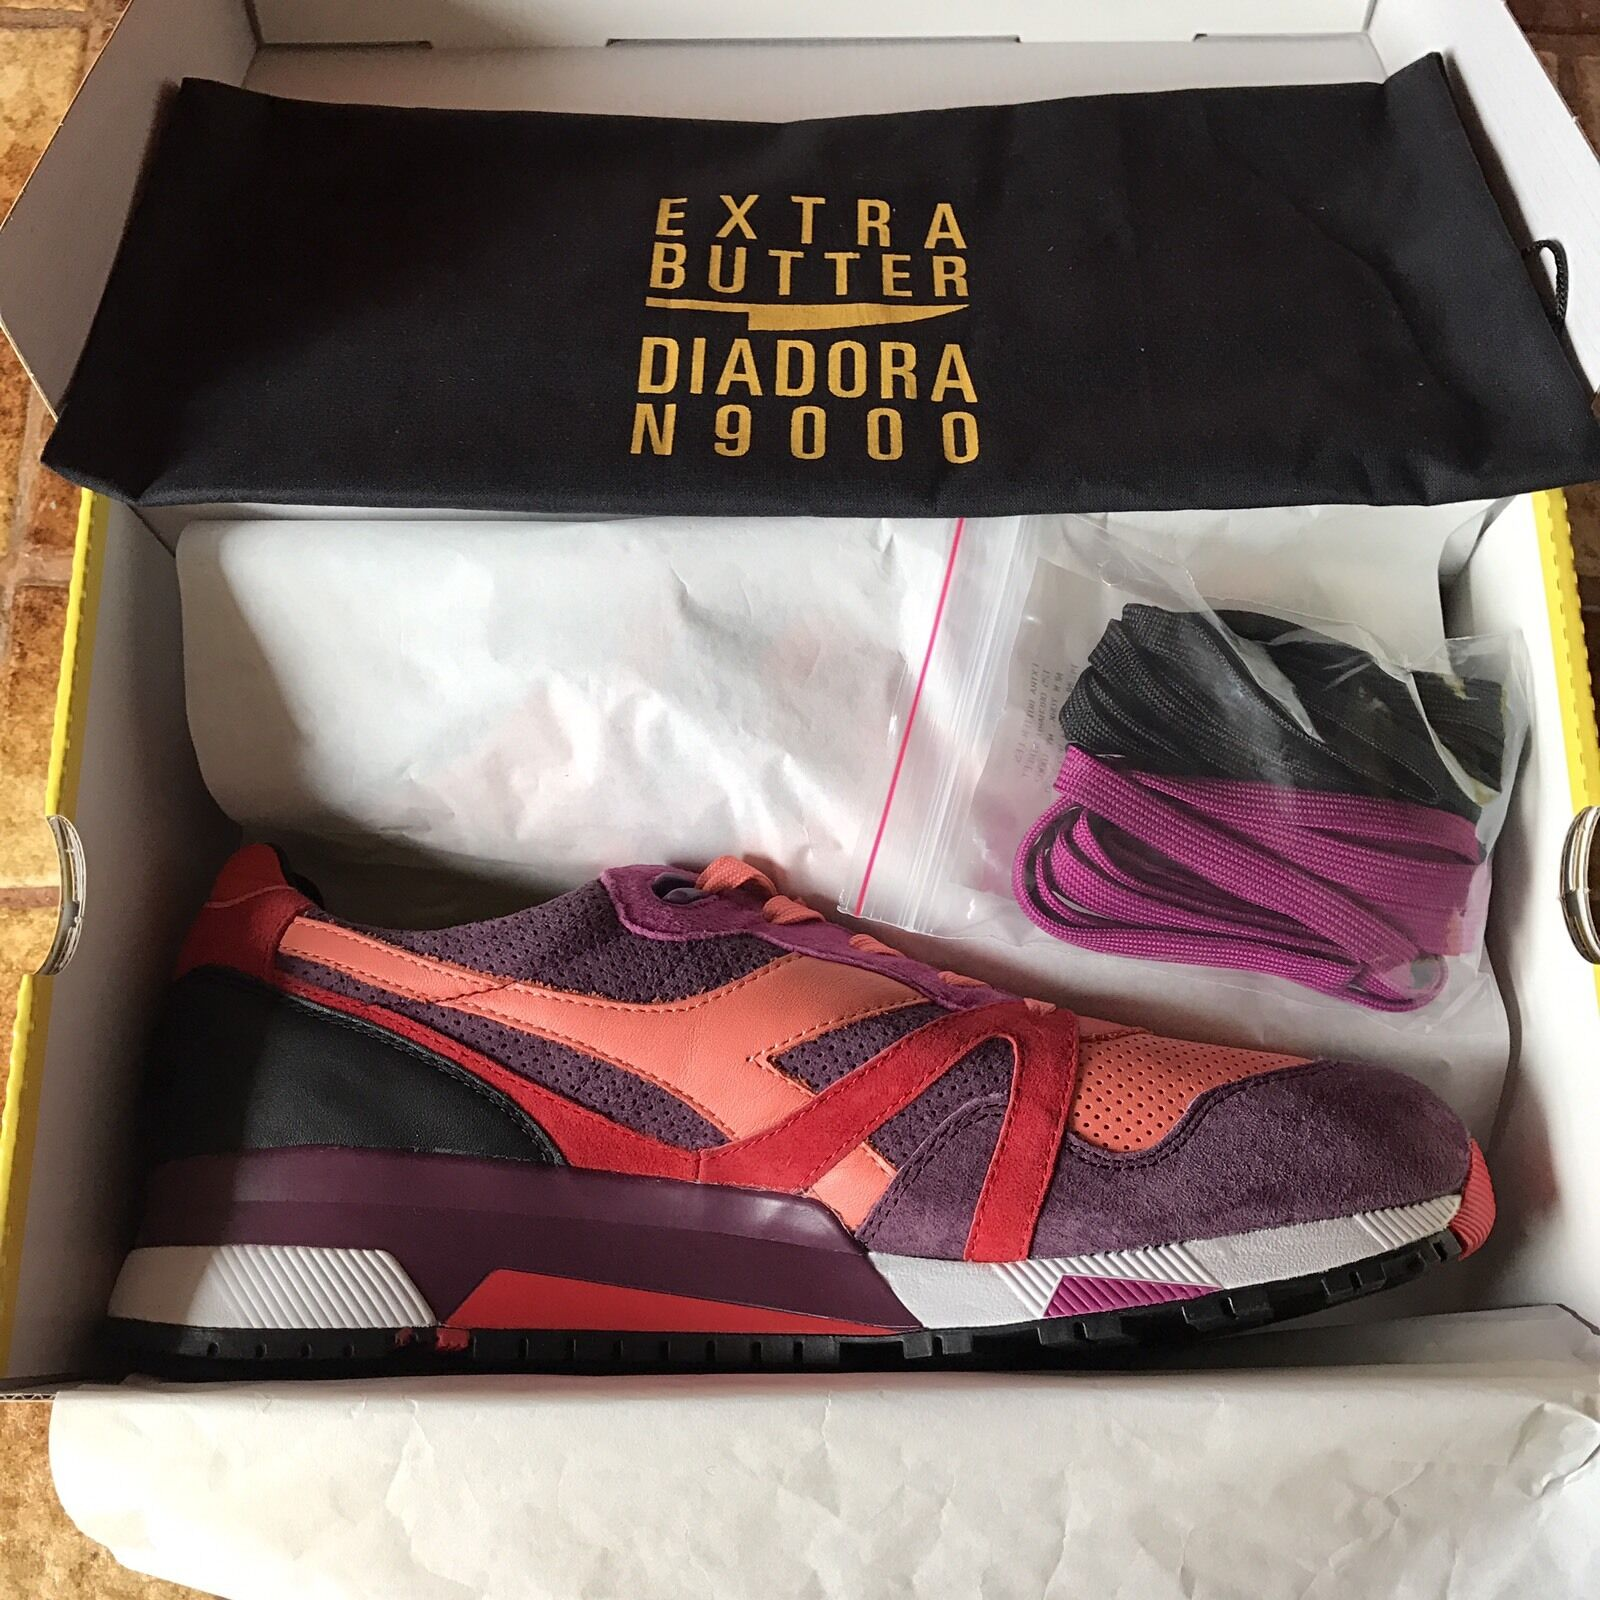 Diadora N9000 x Extra Butter  yellow  - Size 12 Highly Addictive - Castellers